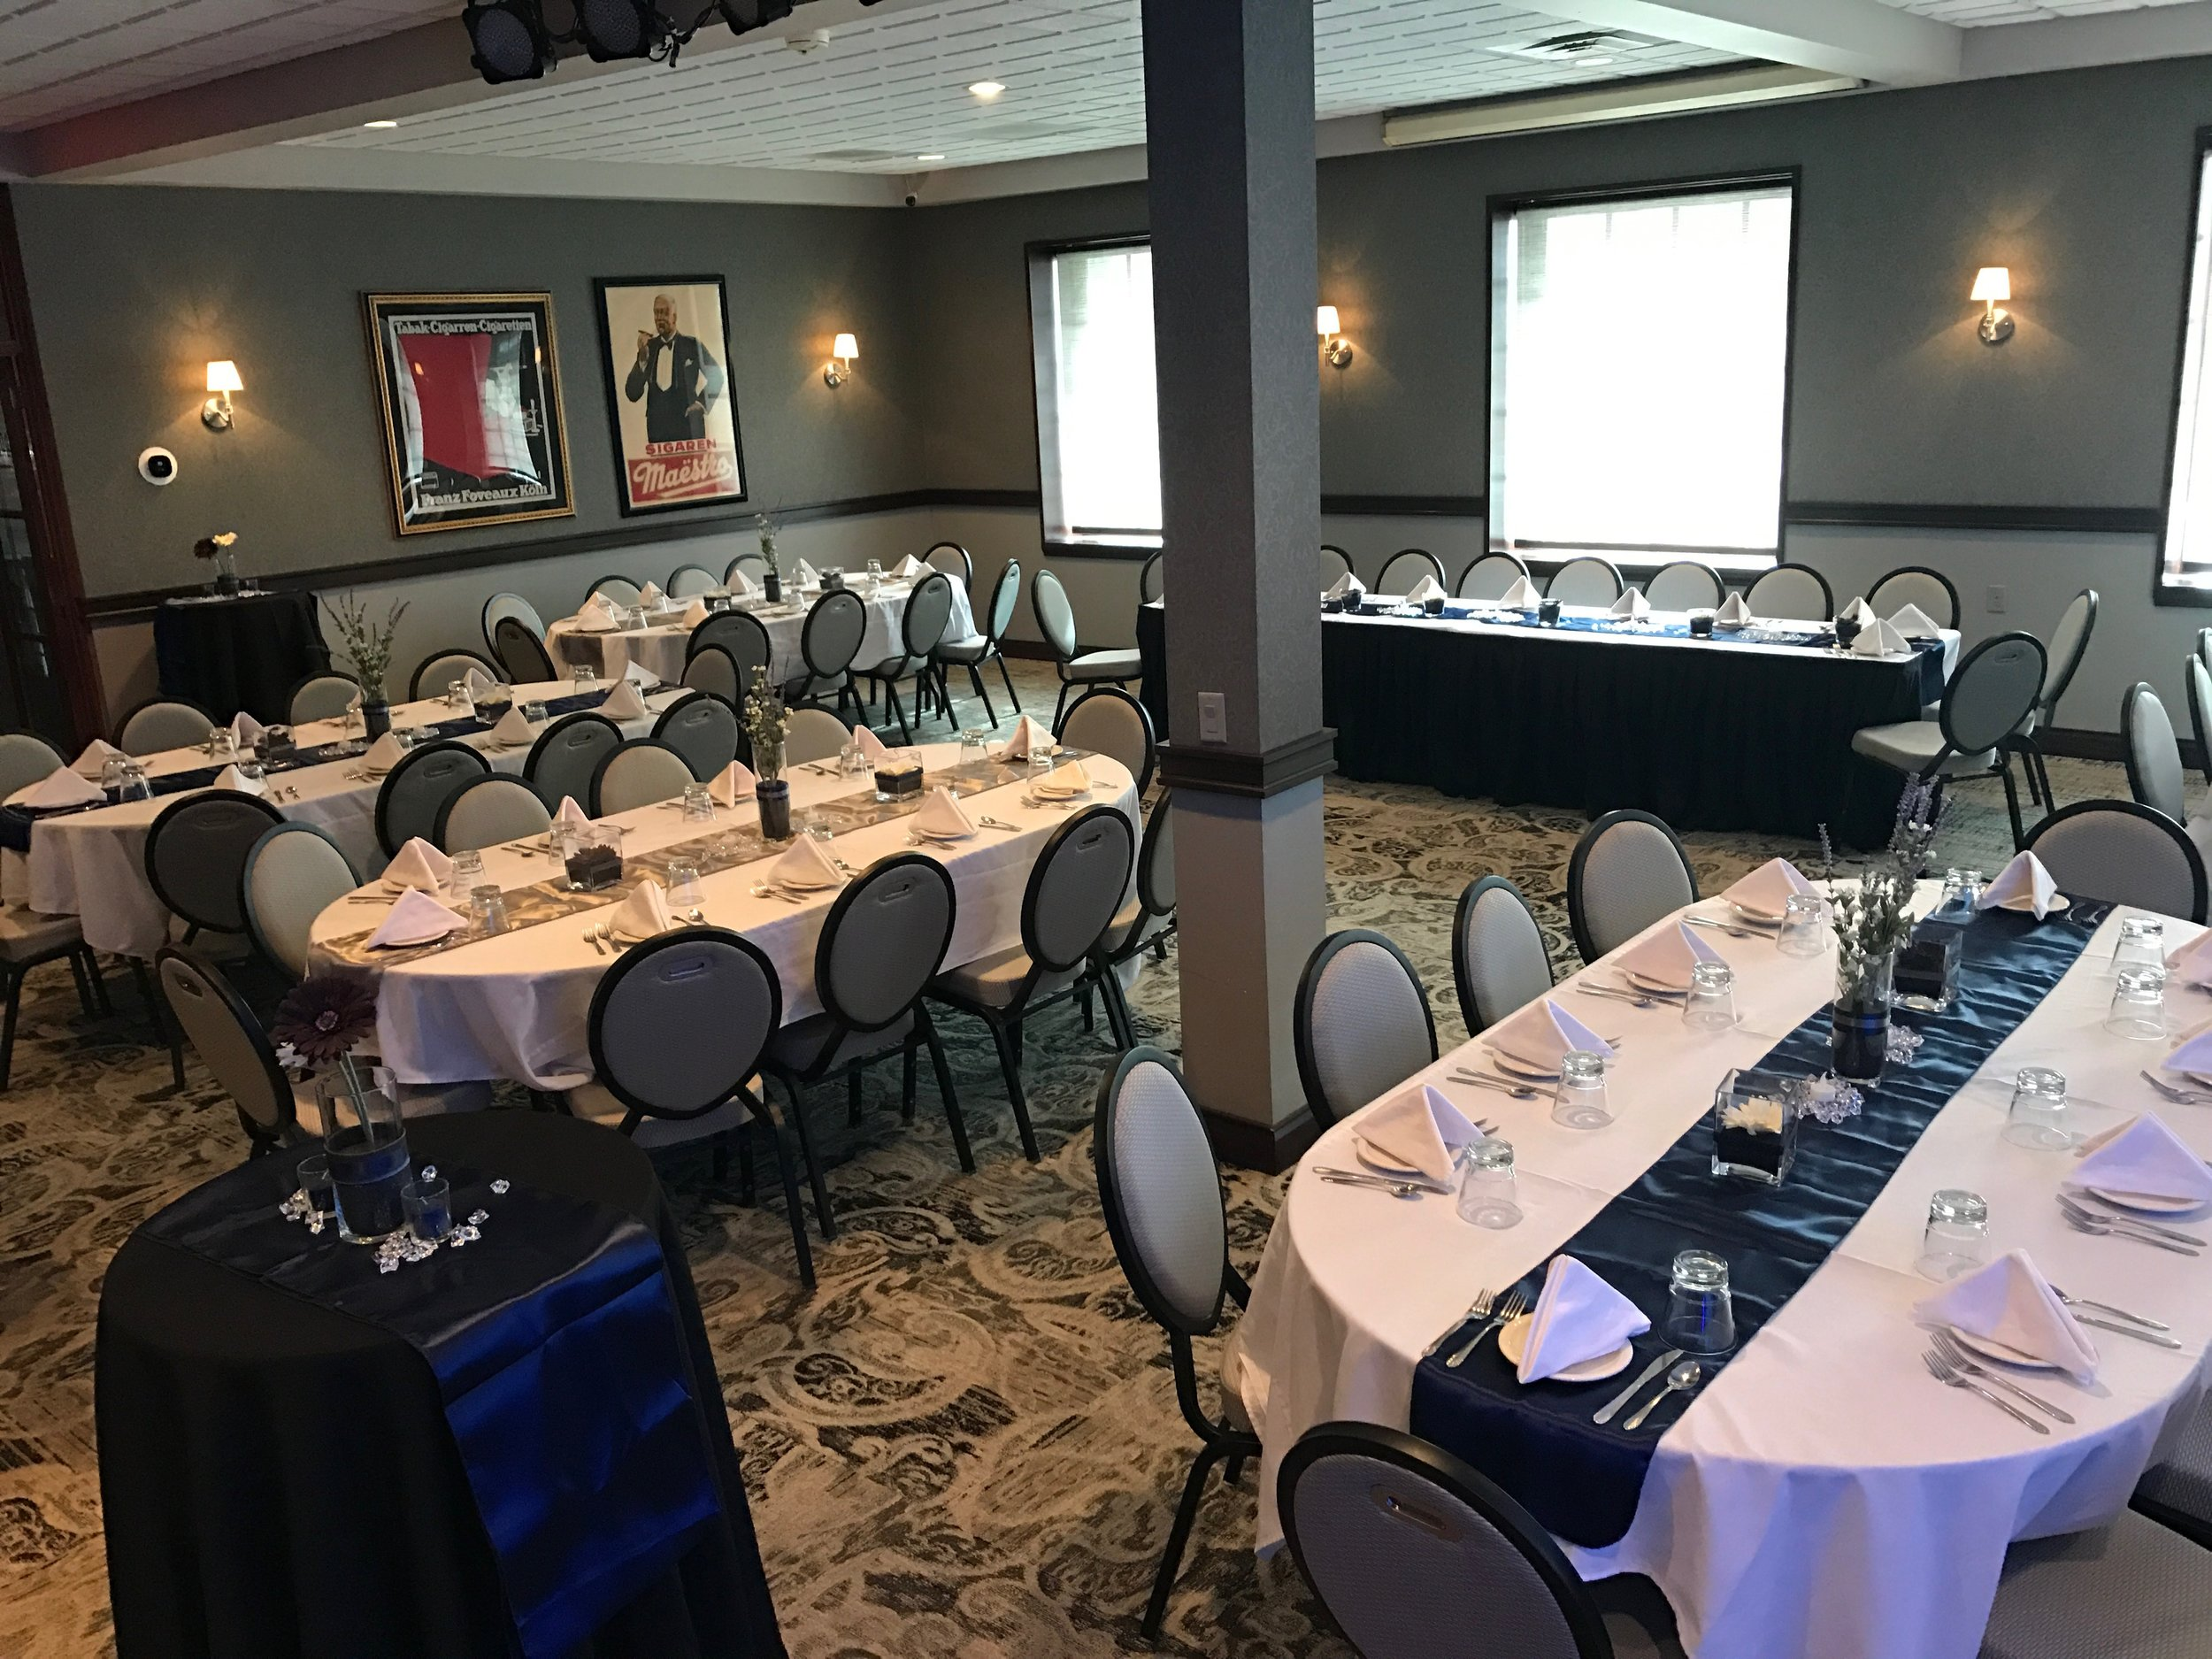 banquet-room-set-up-for-a-60-person-wedding_33903417620_o.jpg